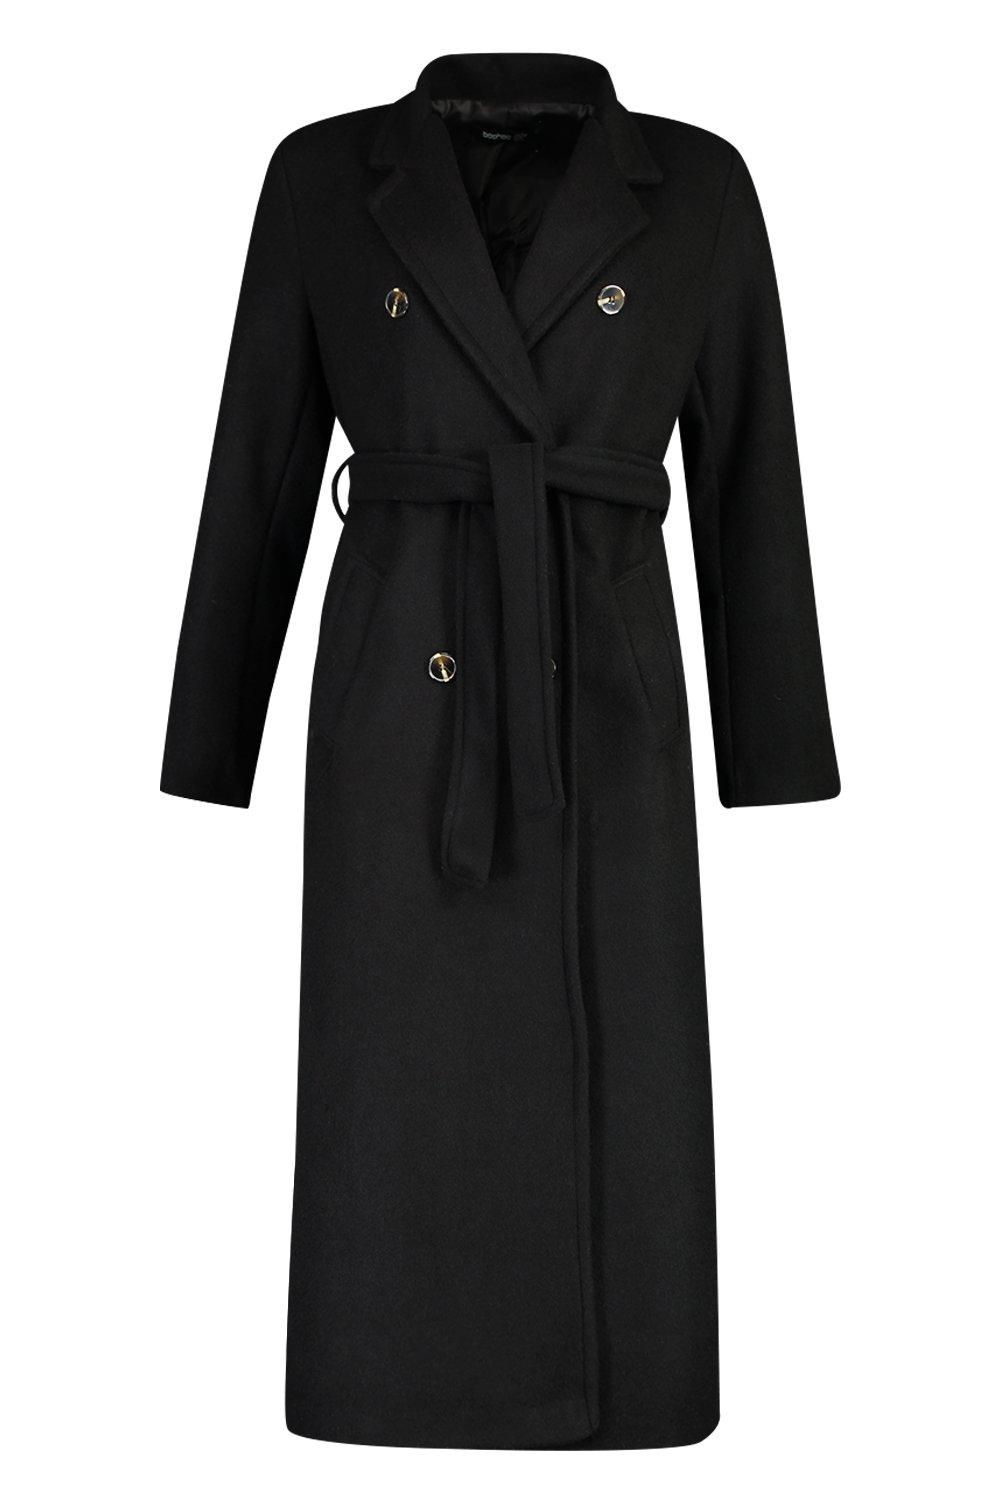 Vintage Coats & Jackets | Retro Coats and Jackets Womens Longline Double Breasted Belted Wool Look Coat - Black - 12 $36.00 AT vintagedancer.com